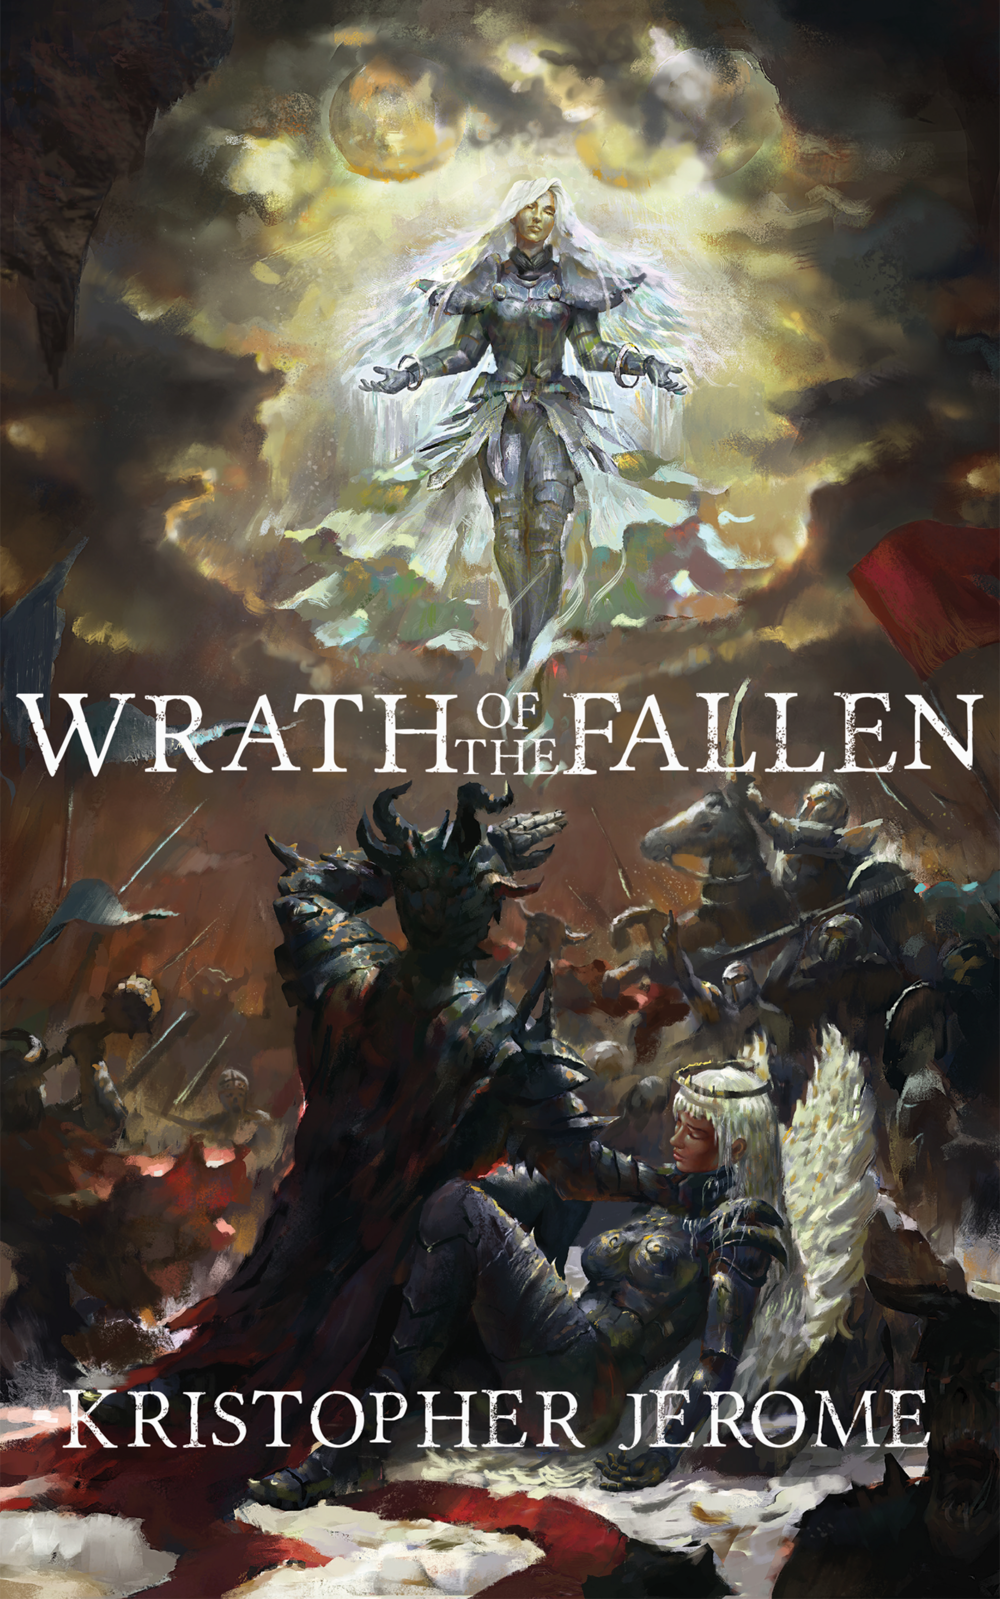 WRATH OF THE FALLEN by Kristopher Jerome